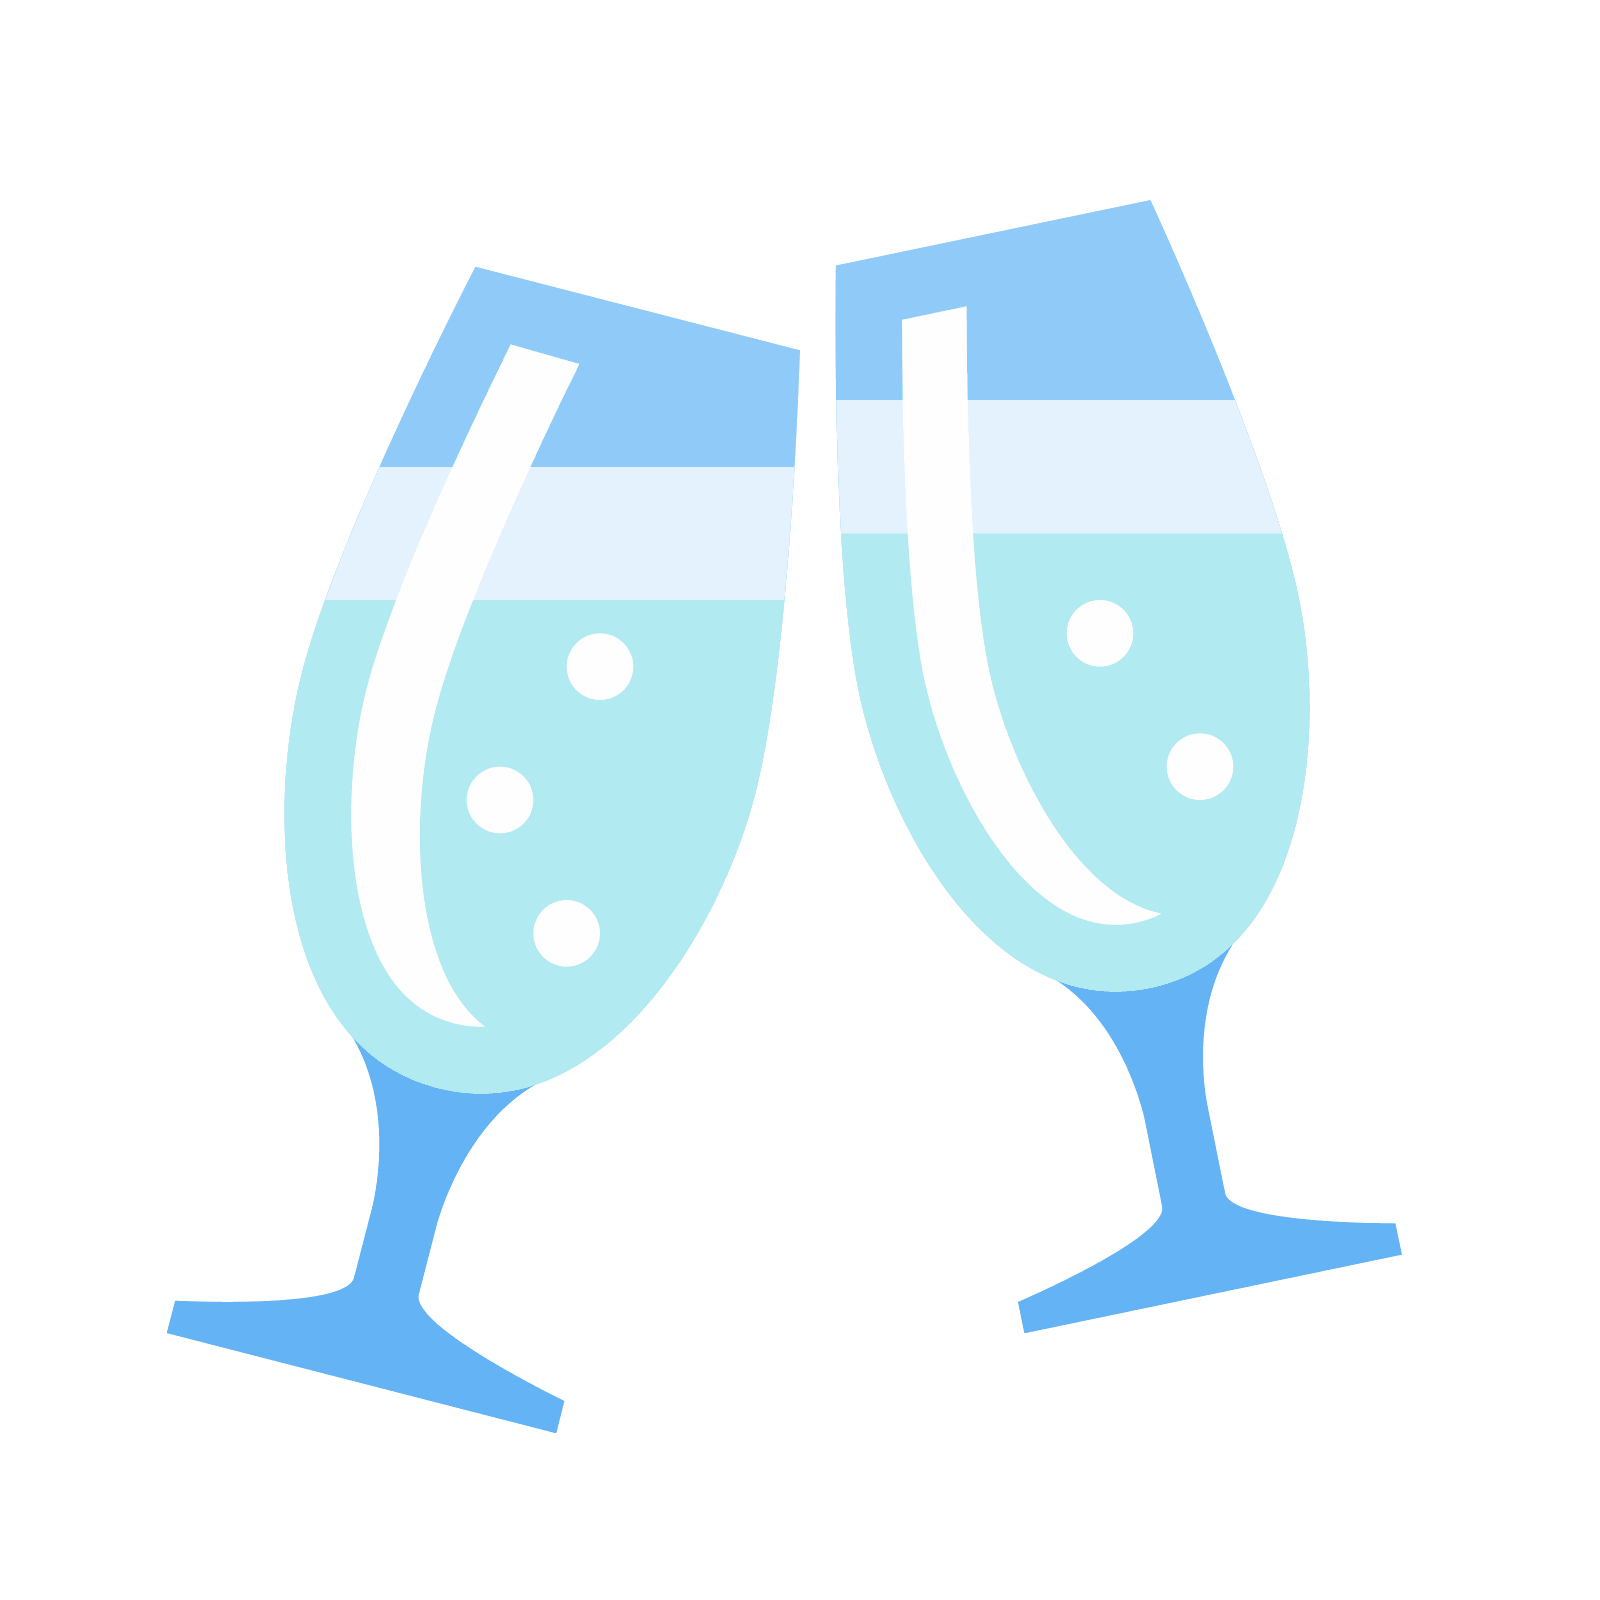 Champagne Icon There Are Two Wine Glasses That Appear To Be Half Full And There Is A Line Coming Out Of The Top To Depict Clinking Of Th Icon Champagne Vector